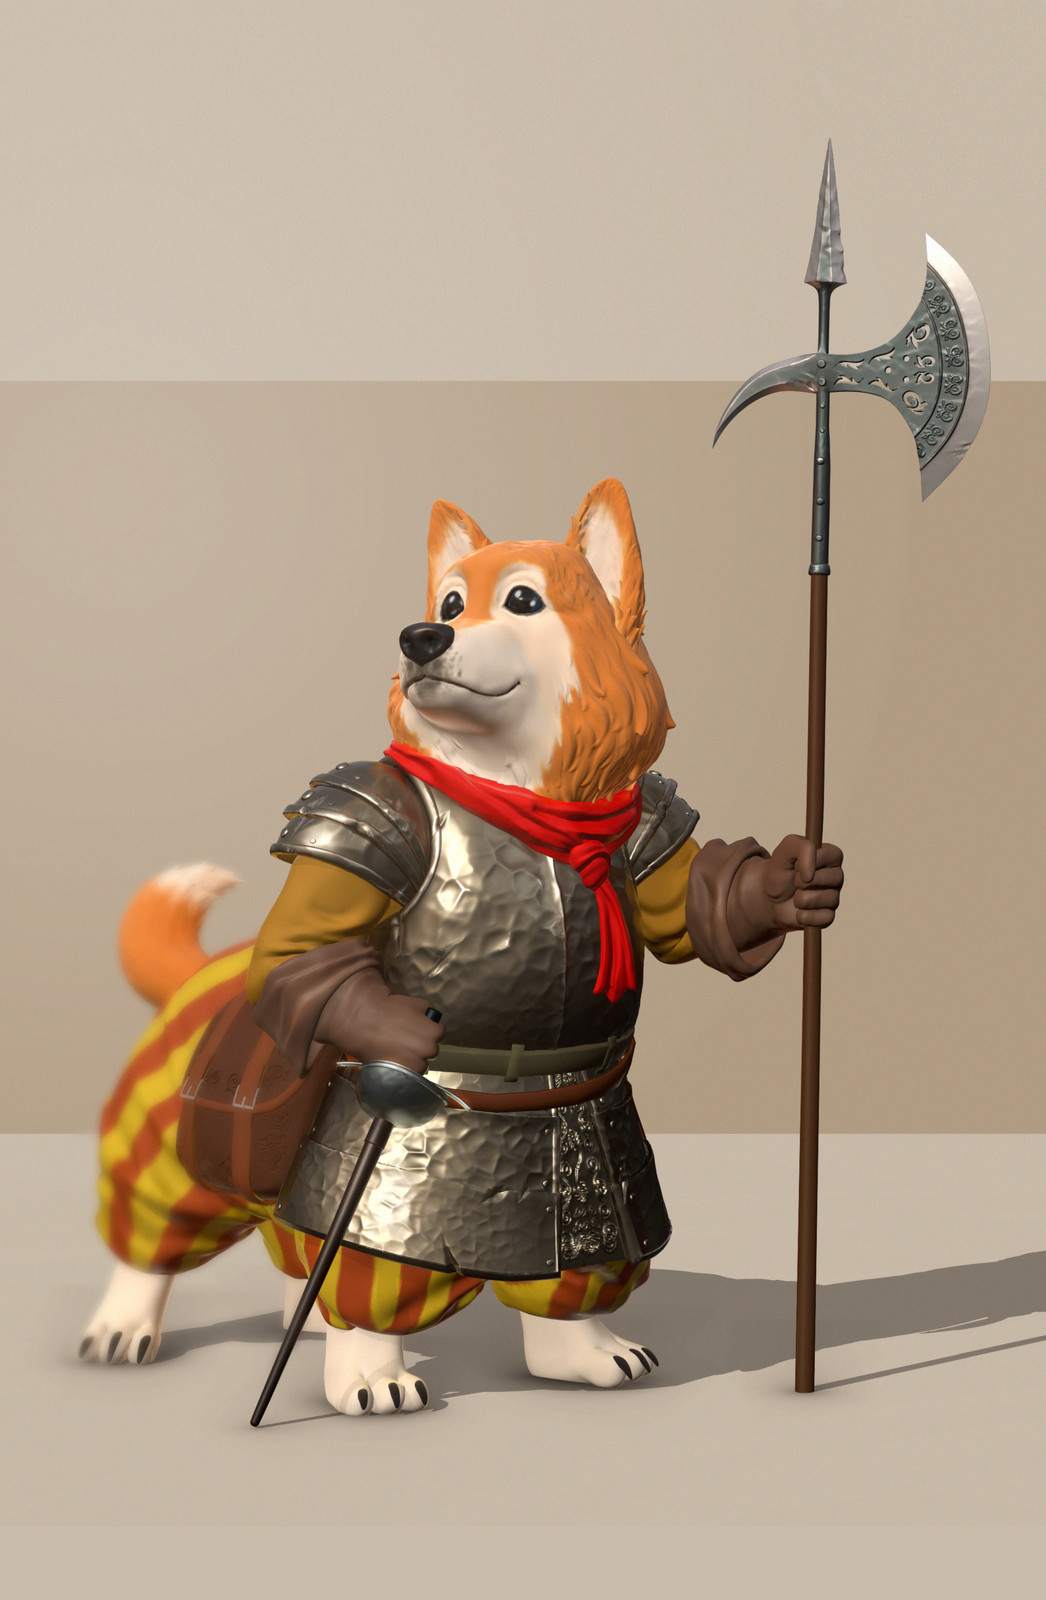 Corgi Knight| The Dogs of War